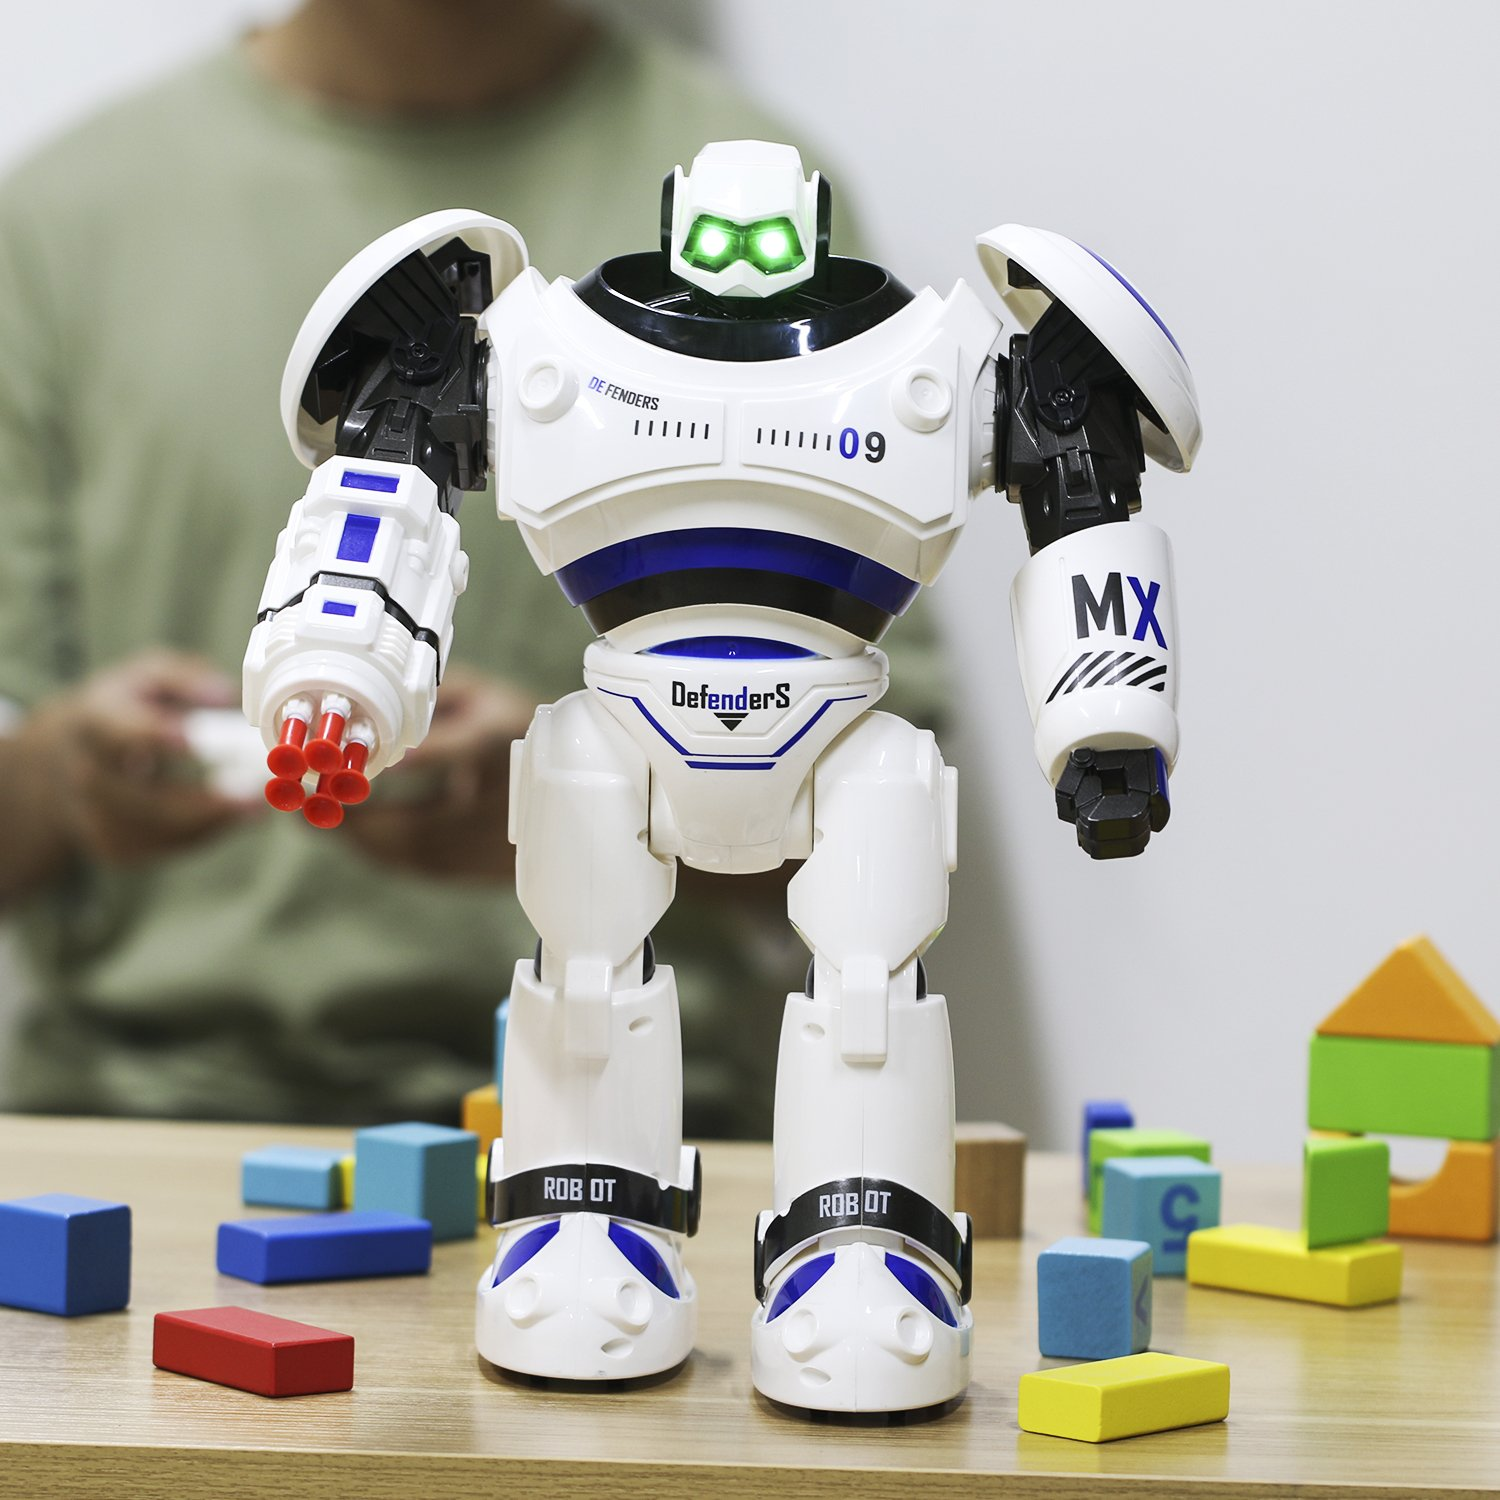 SGILE RC Robot Toy, Programmable Intelligent Walk Sing Dance Robot for Kids Gift Present, White by SGILE (Image #7)